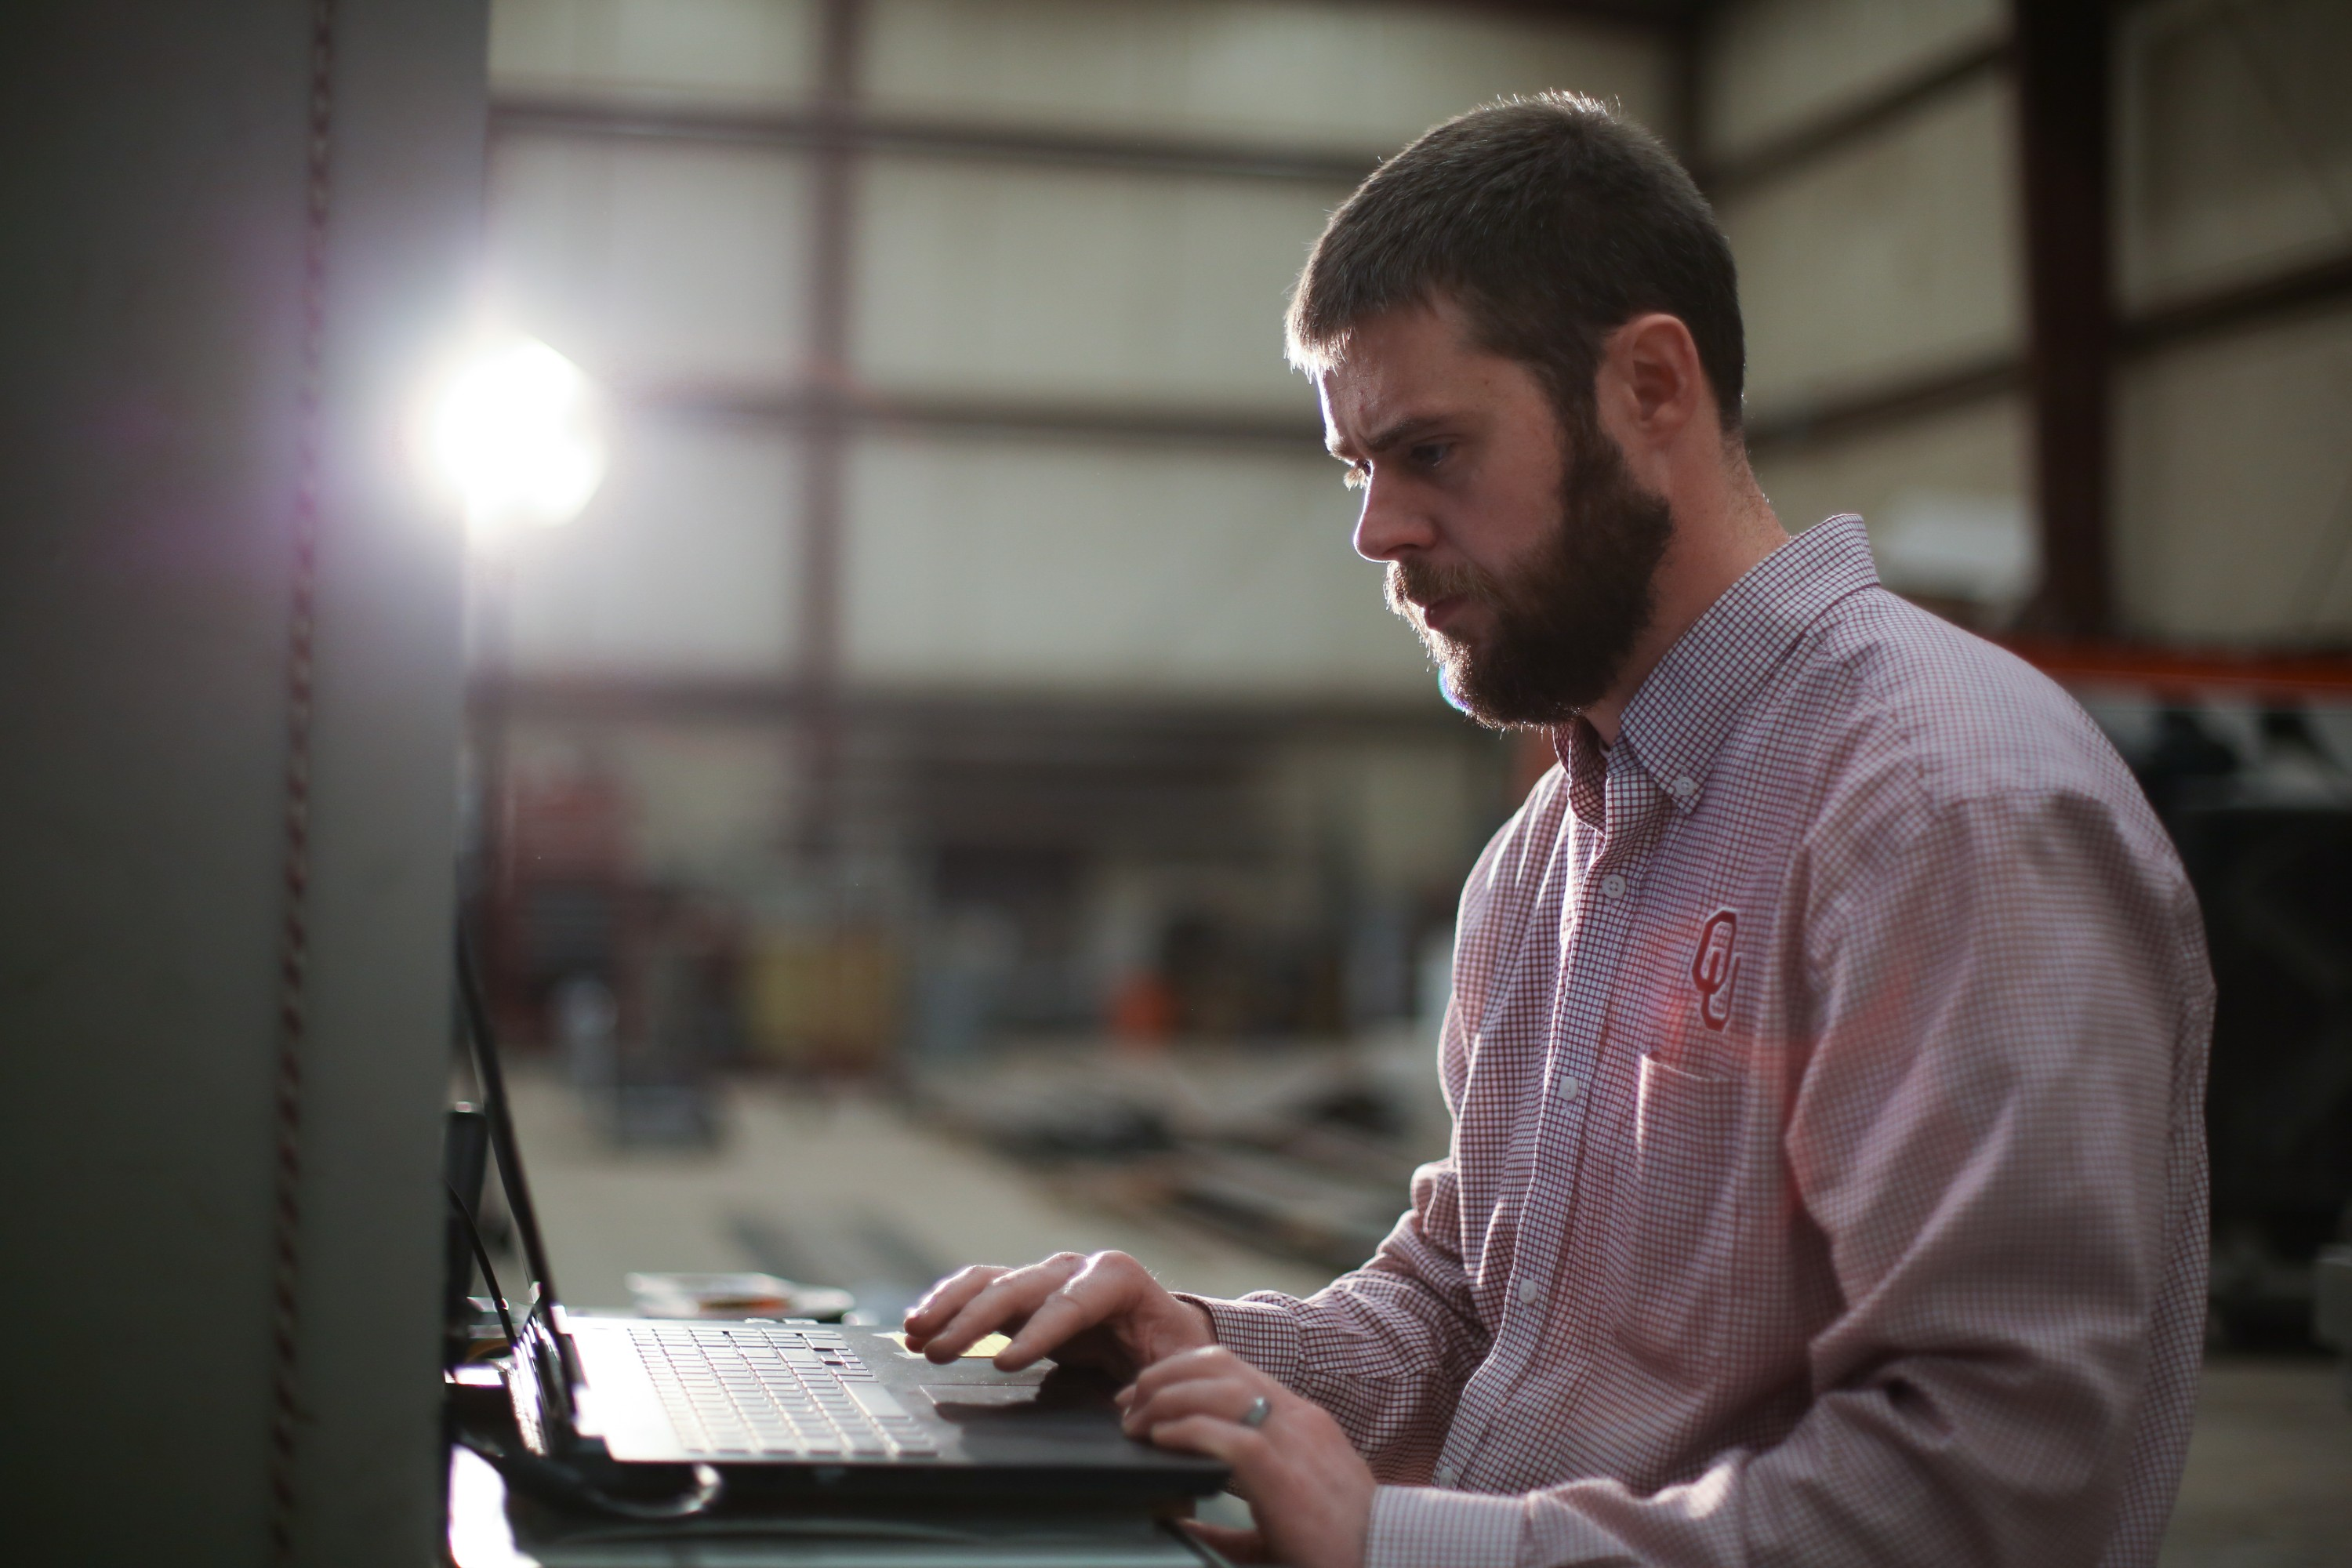 An OU Engineer at Fears Lab works on his laptop.